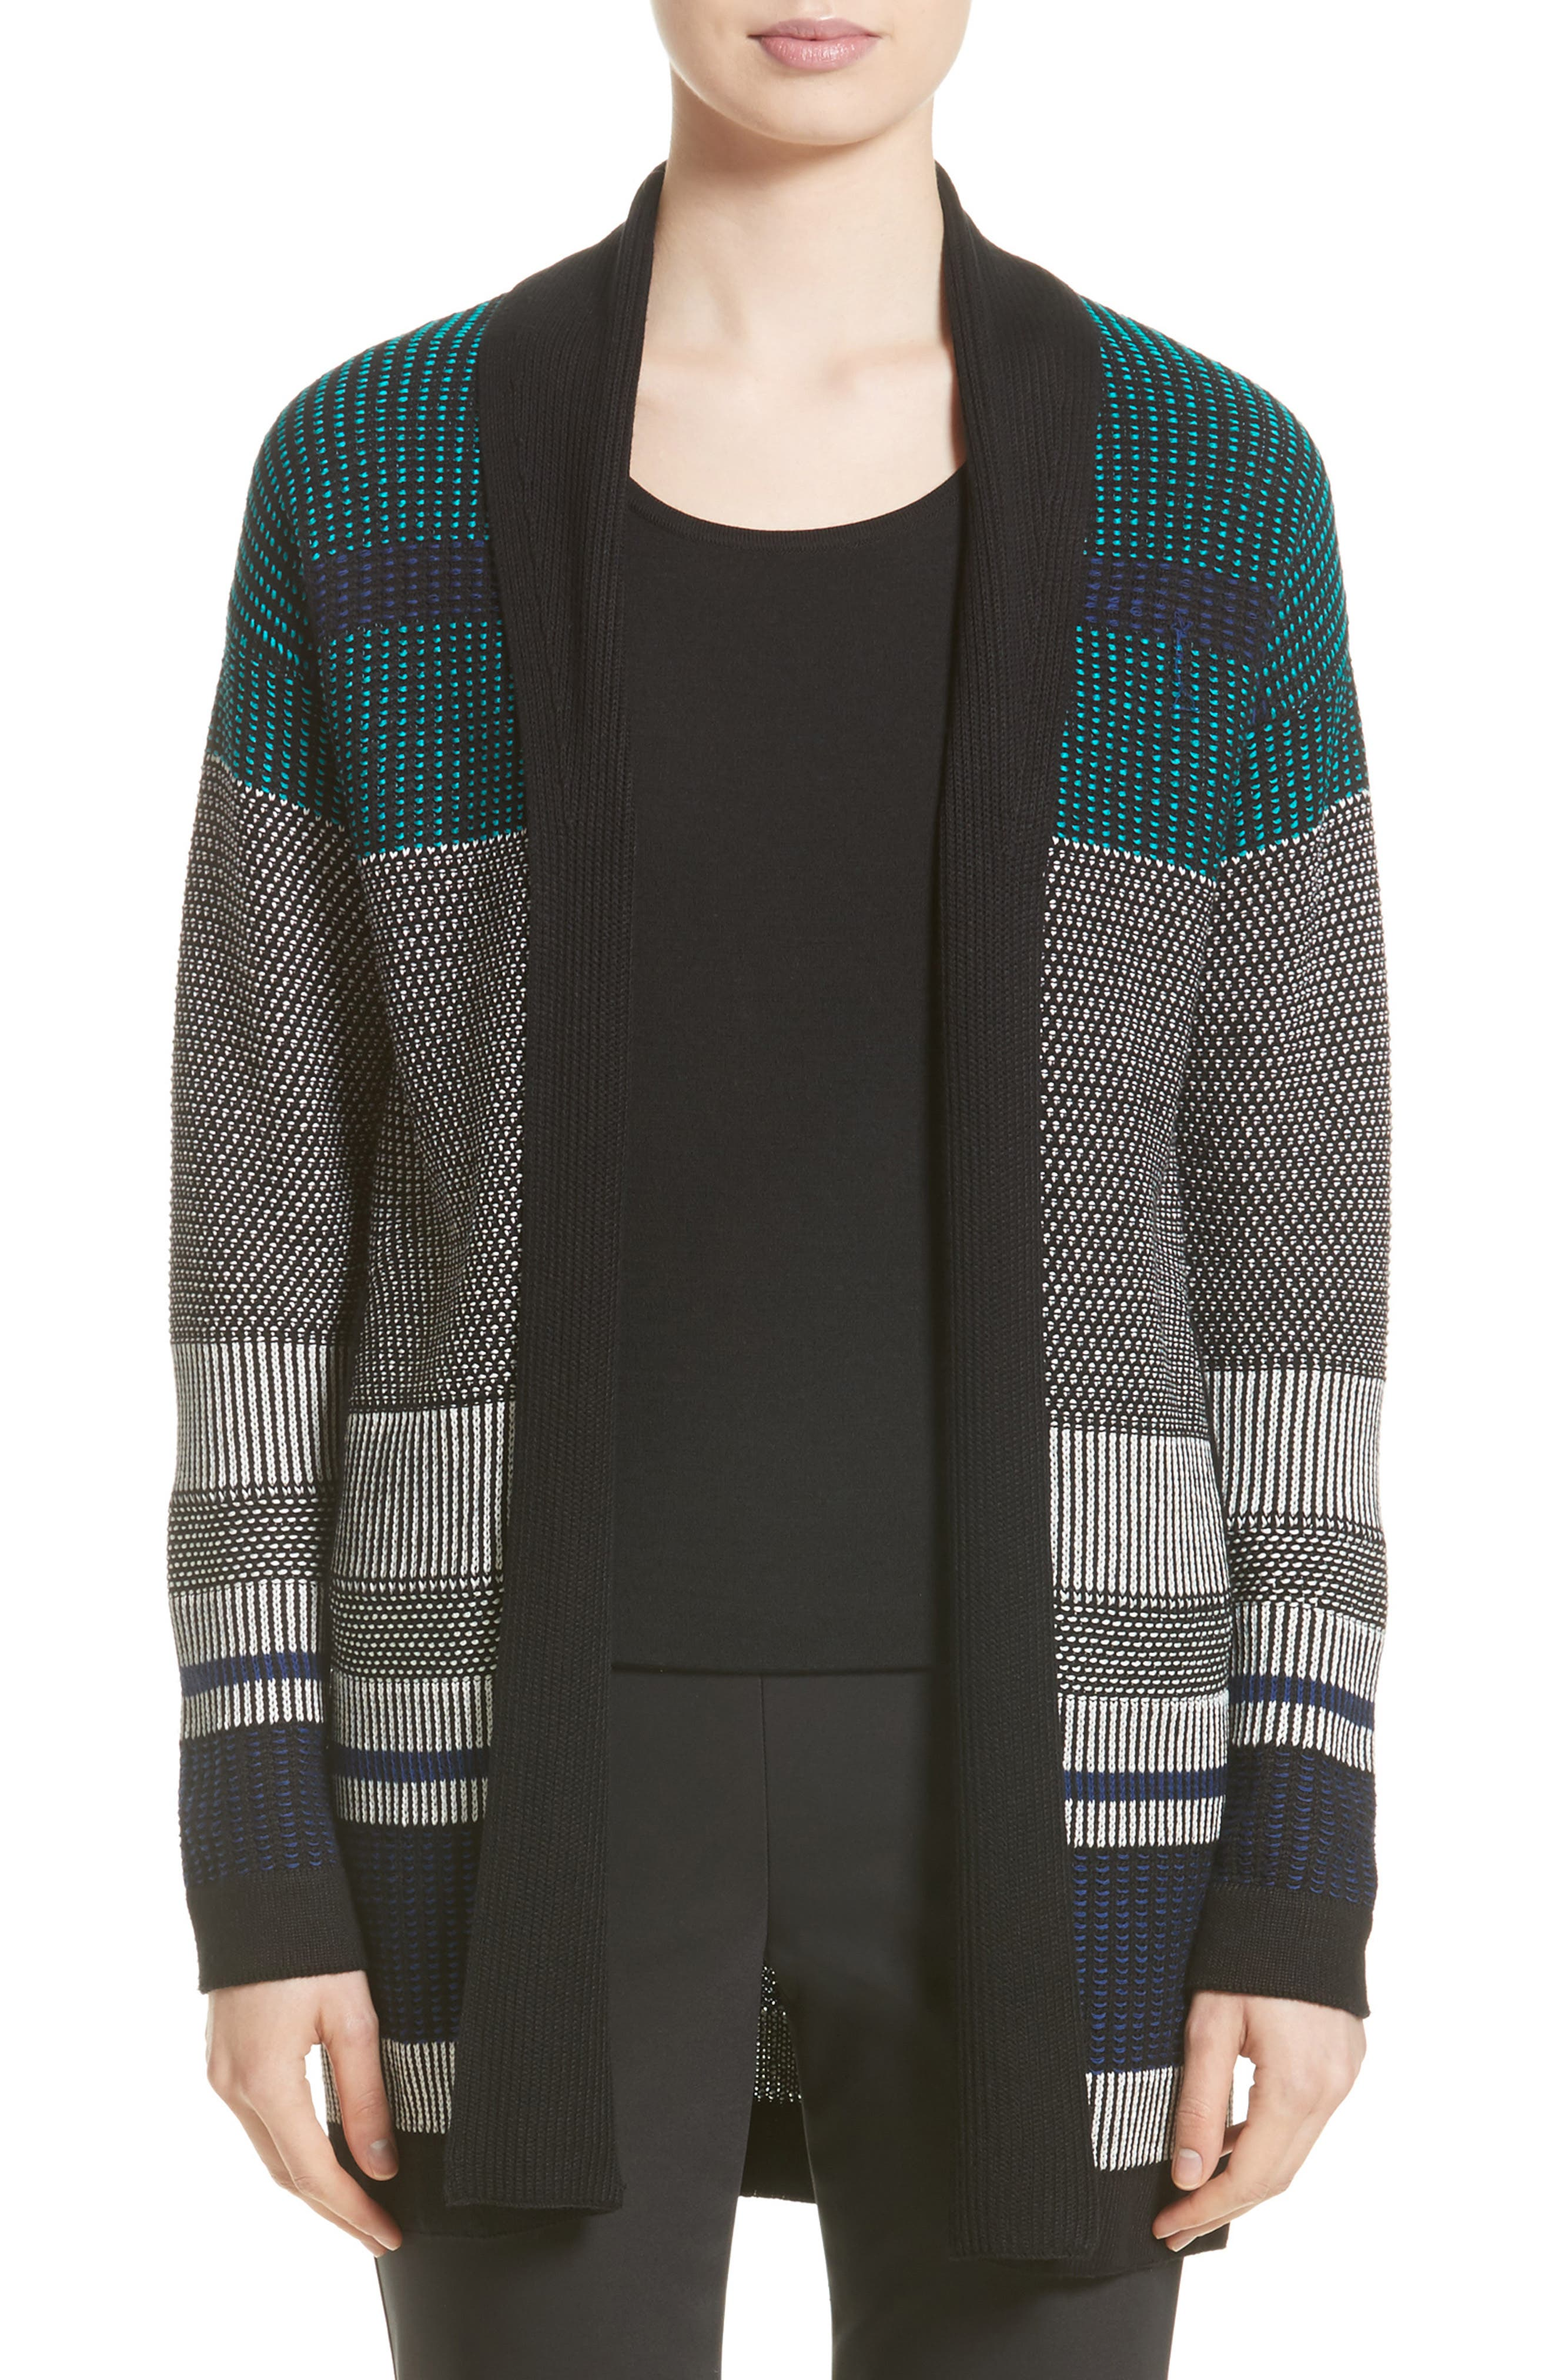 Alternate Image 1 Selected - St. John Collection Engineered Inlay Stitch Knit Cardigan